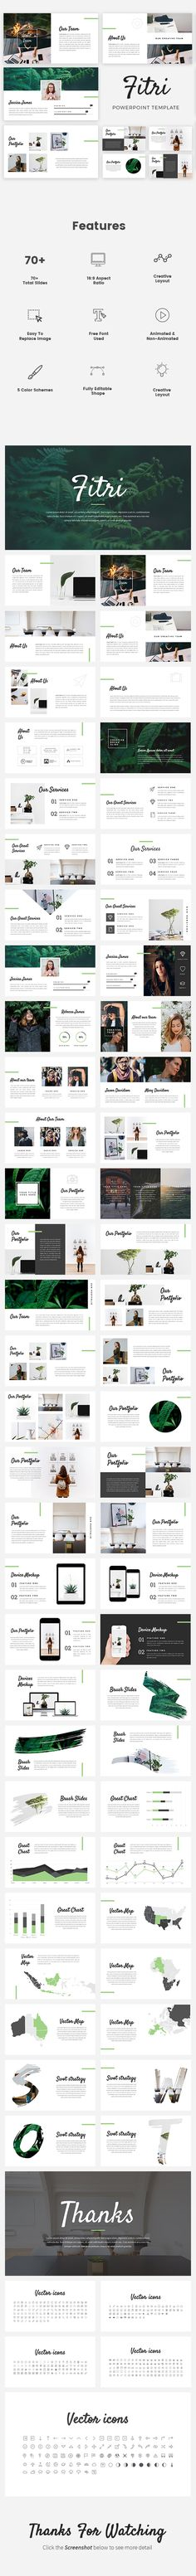 Business Plan PowerPoint Templates Pinterest Business Planning - Fresh cool ppt designs scheme